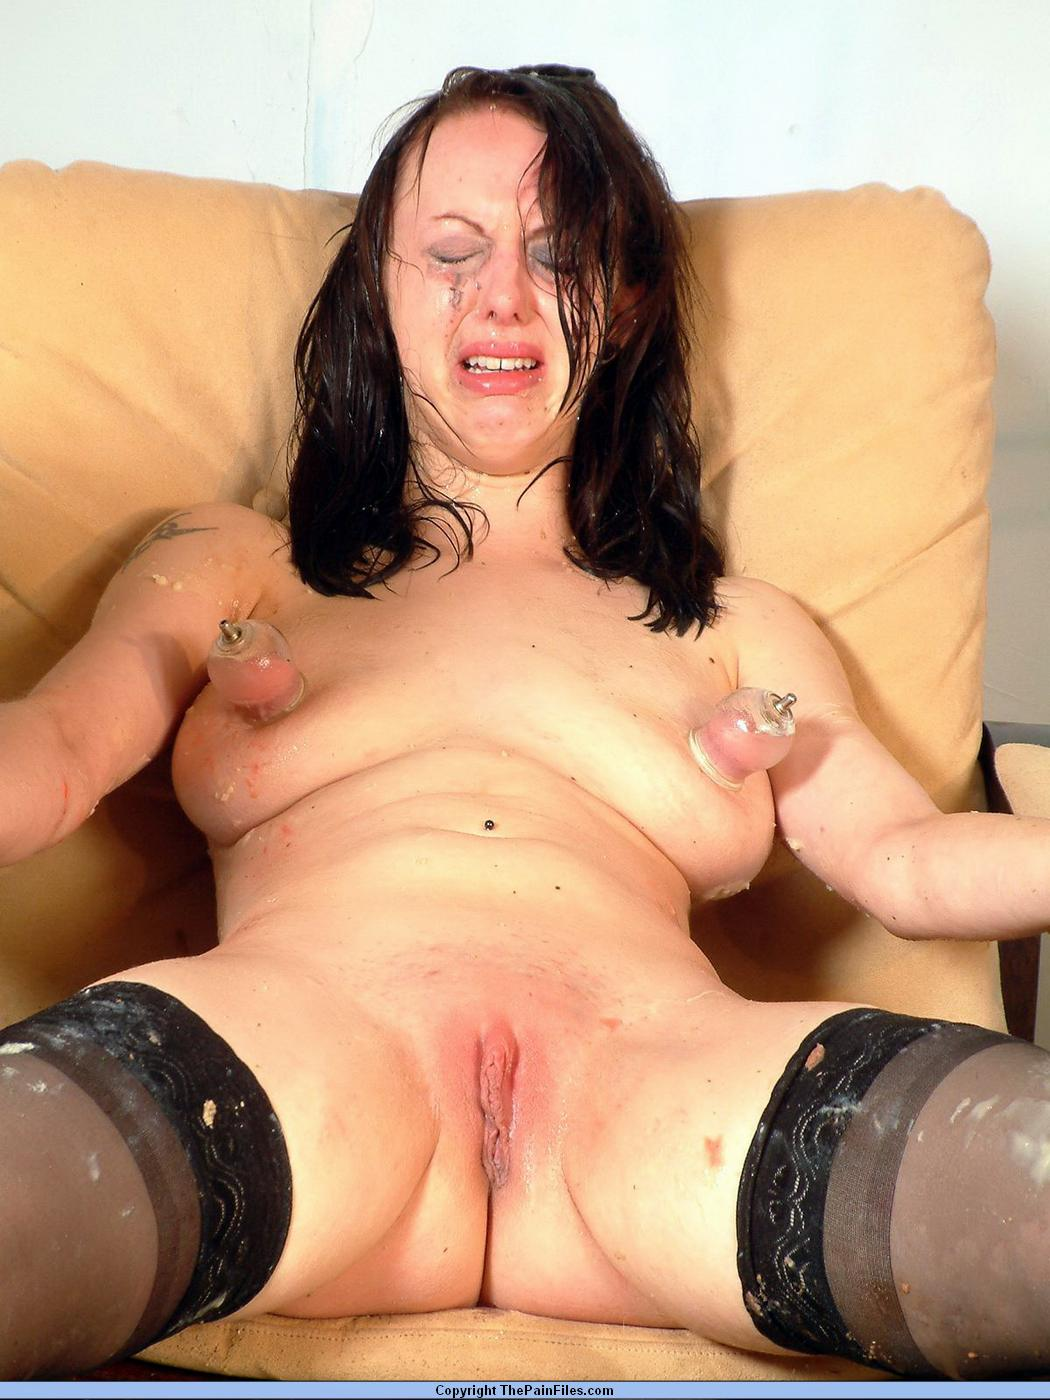 Erotic free humiliation video